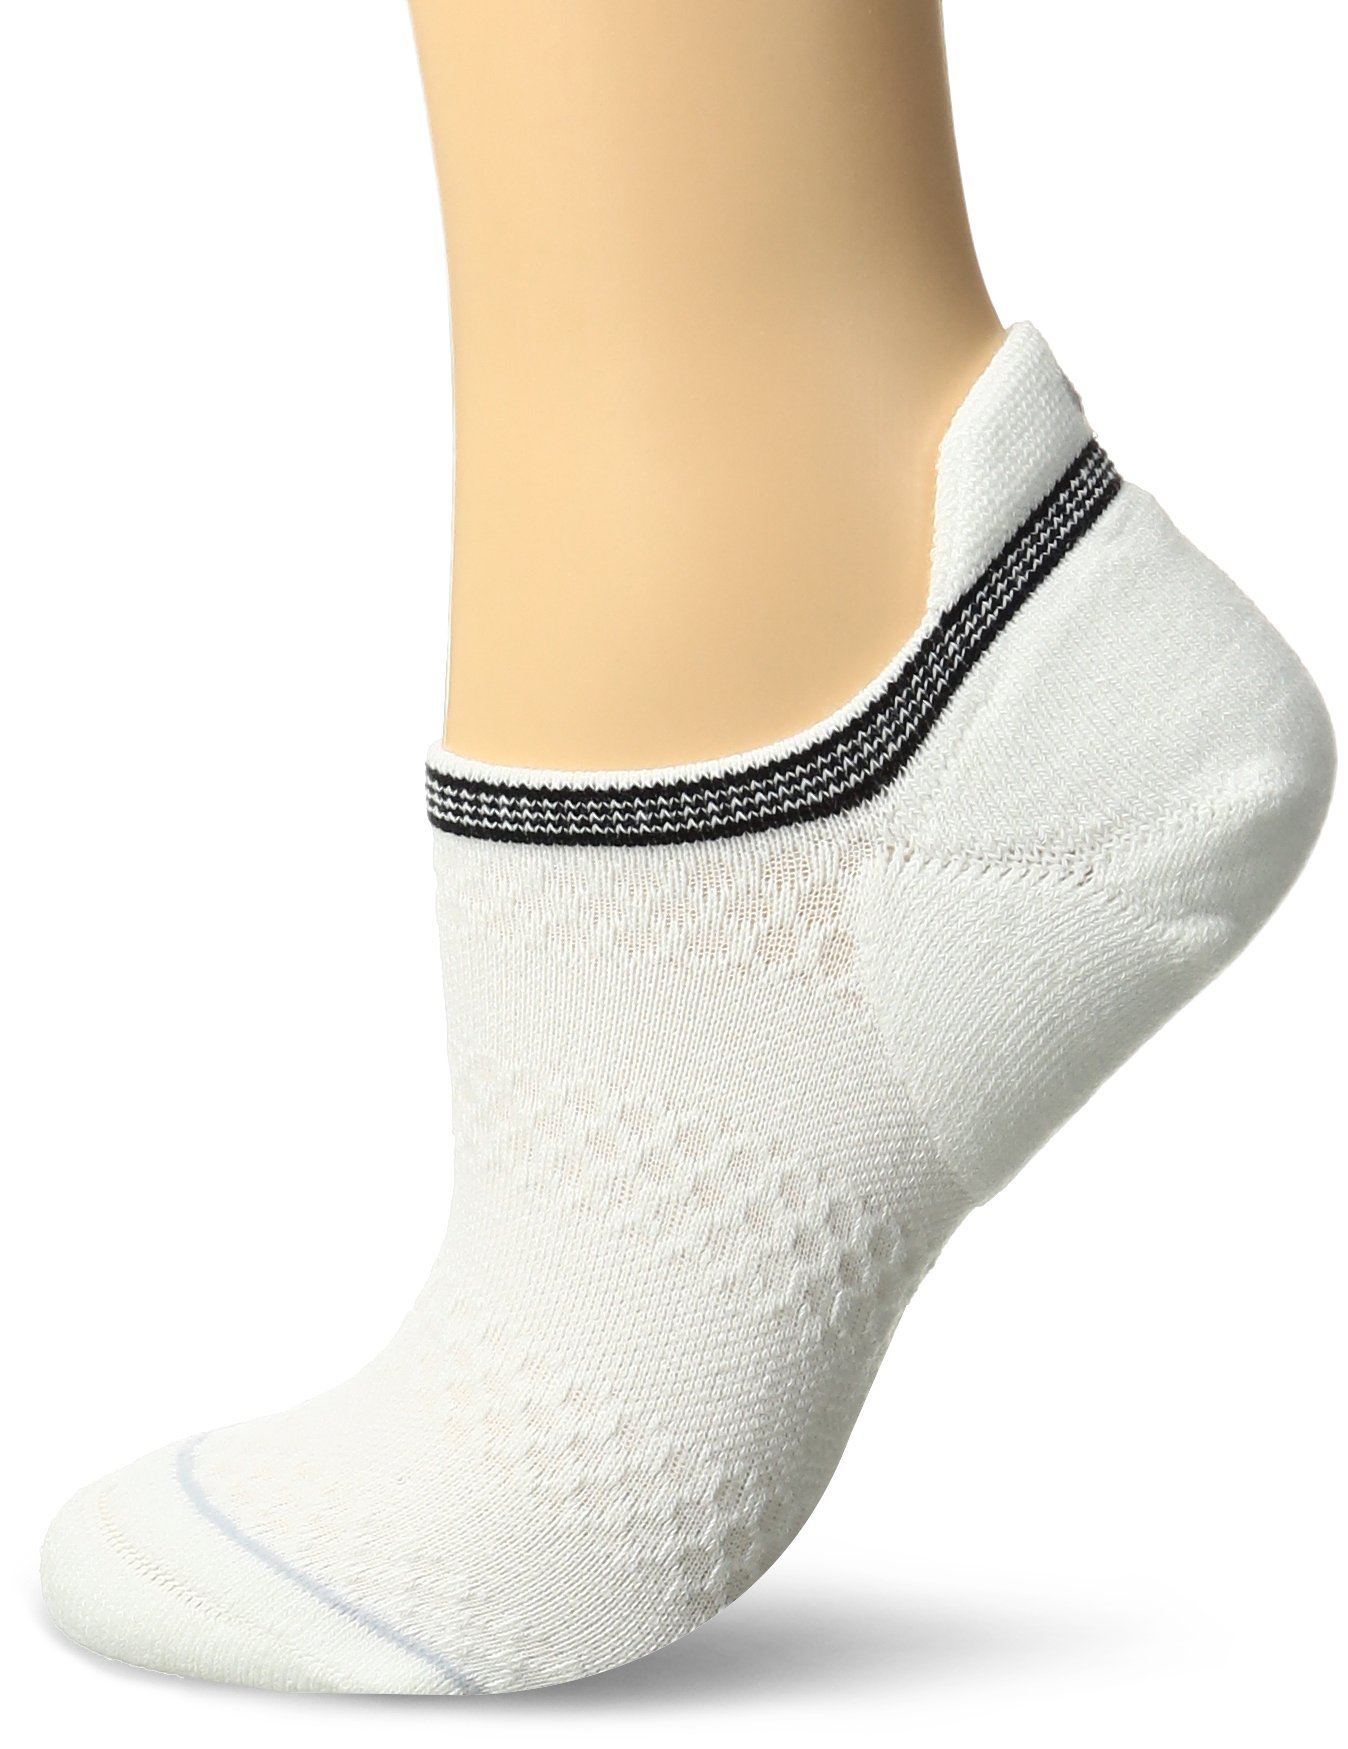 Yummie Women's Coolmax Zone Cushion Athletic Sock